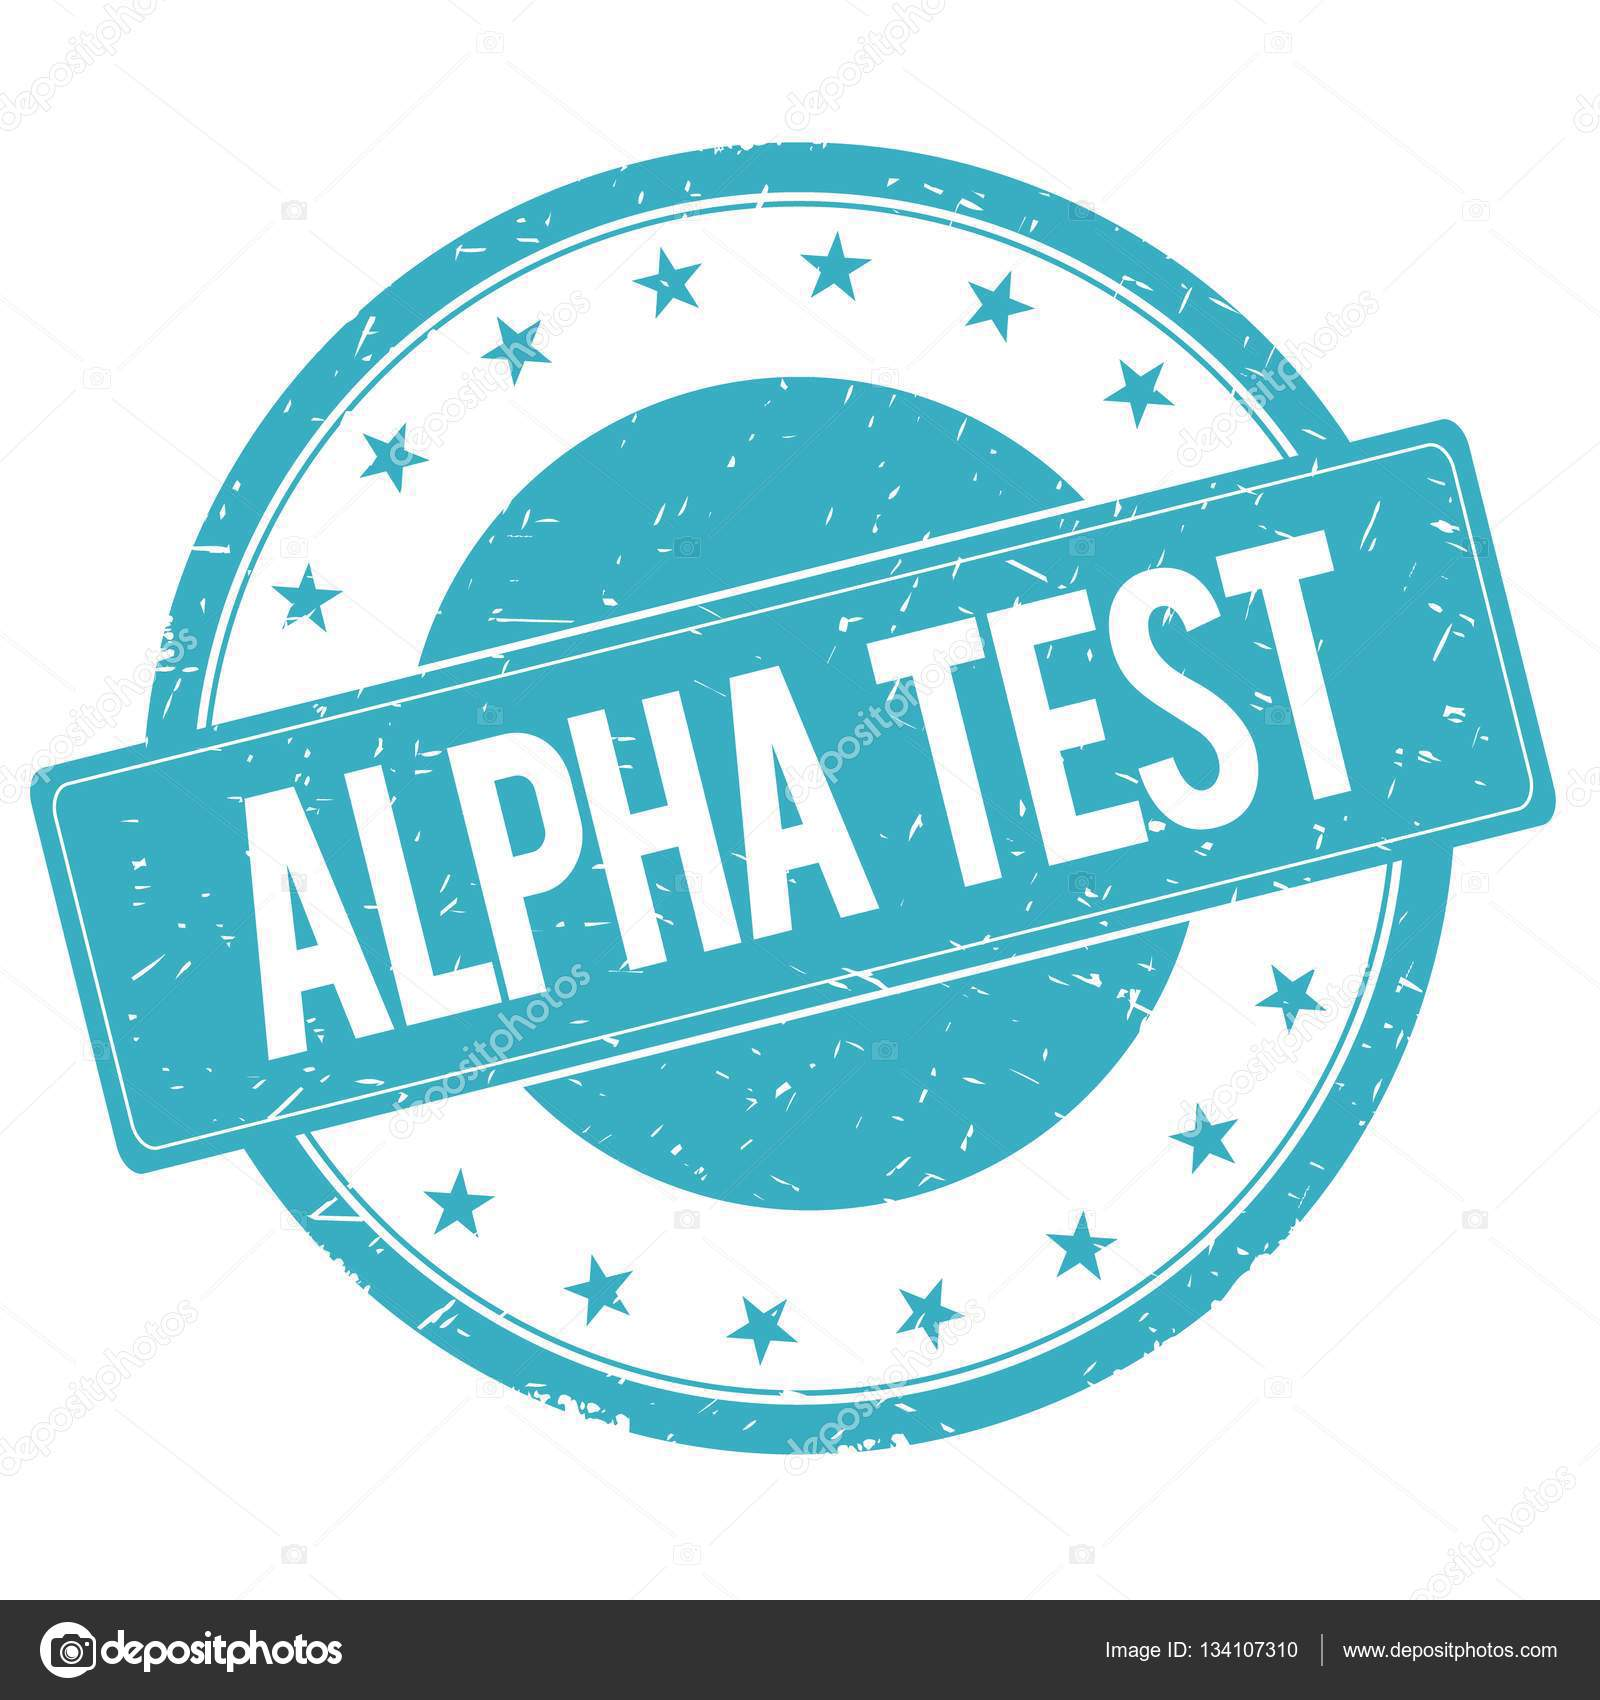 ALPHA TEST stamp sign text word logo cyan blue. — Photo by ionutparvu